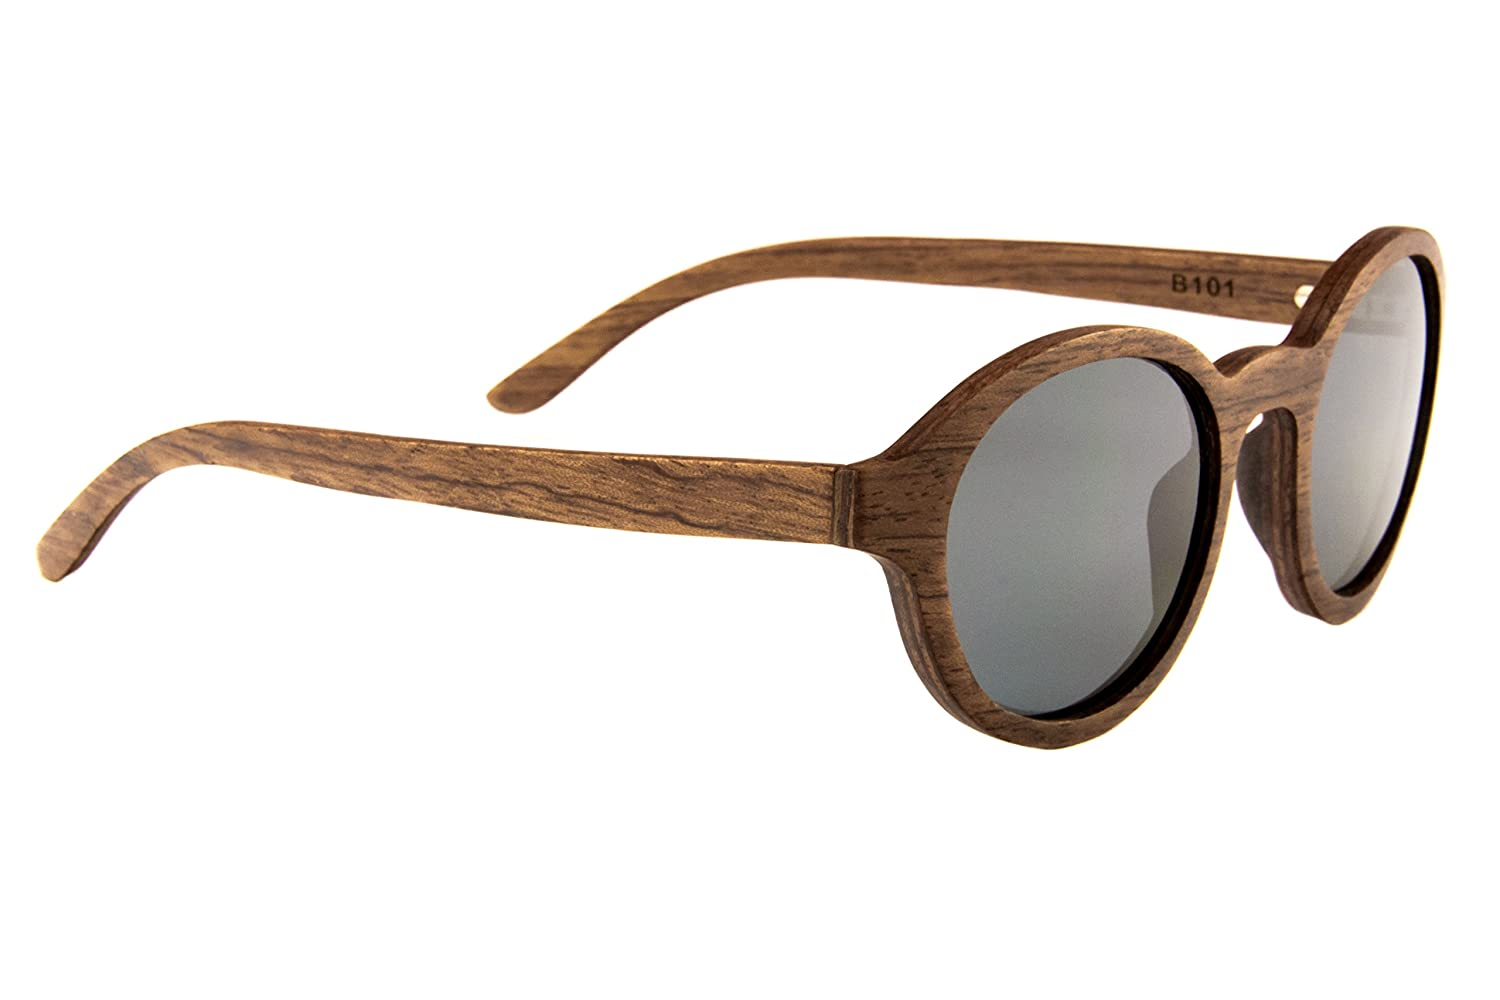 Laimer Holzbrille Modell Diana